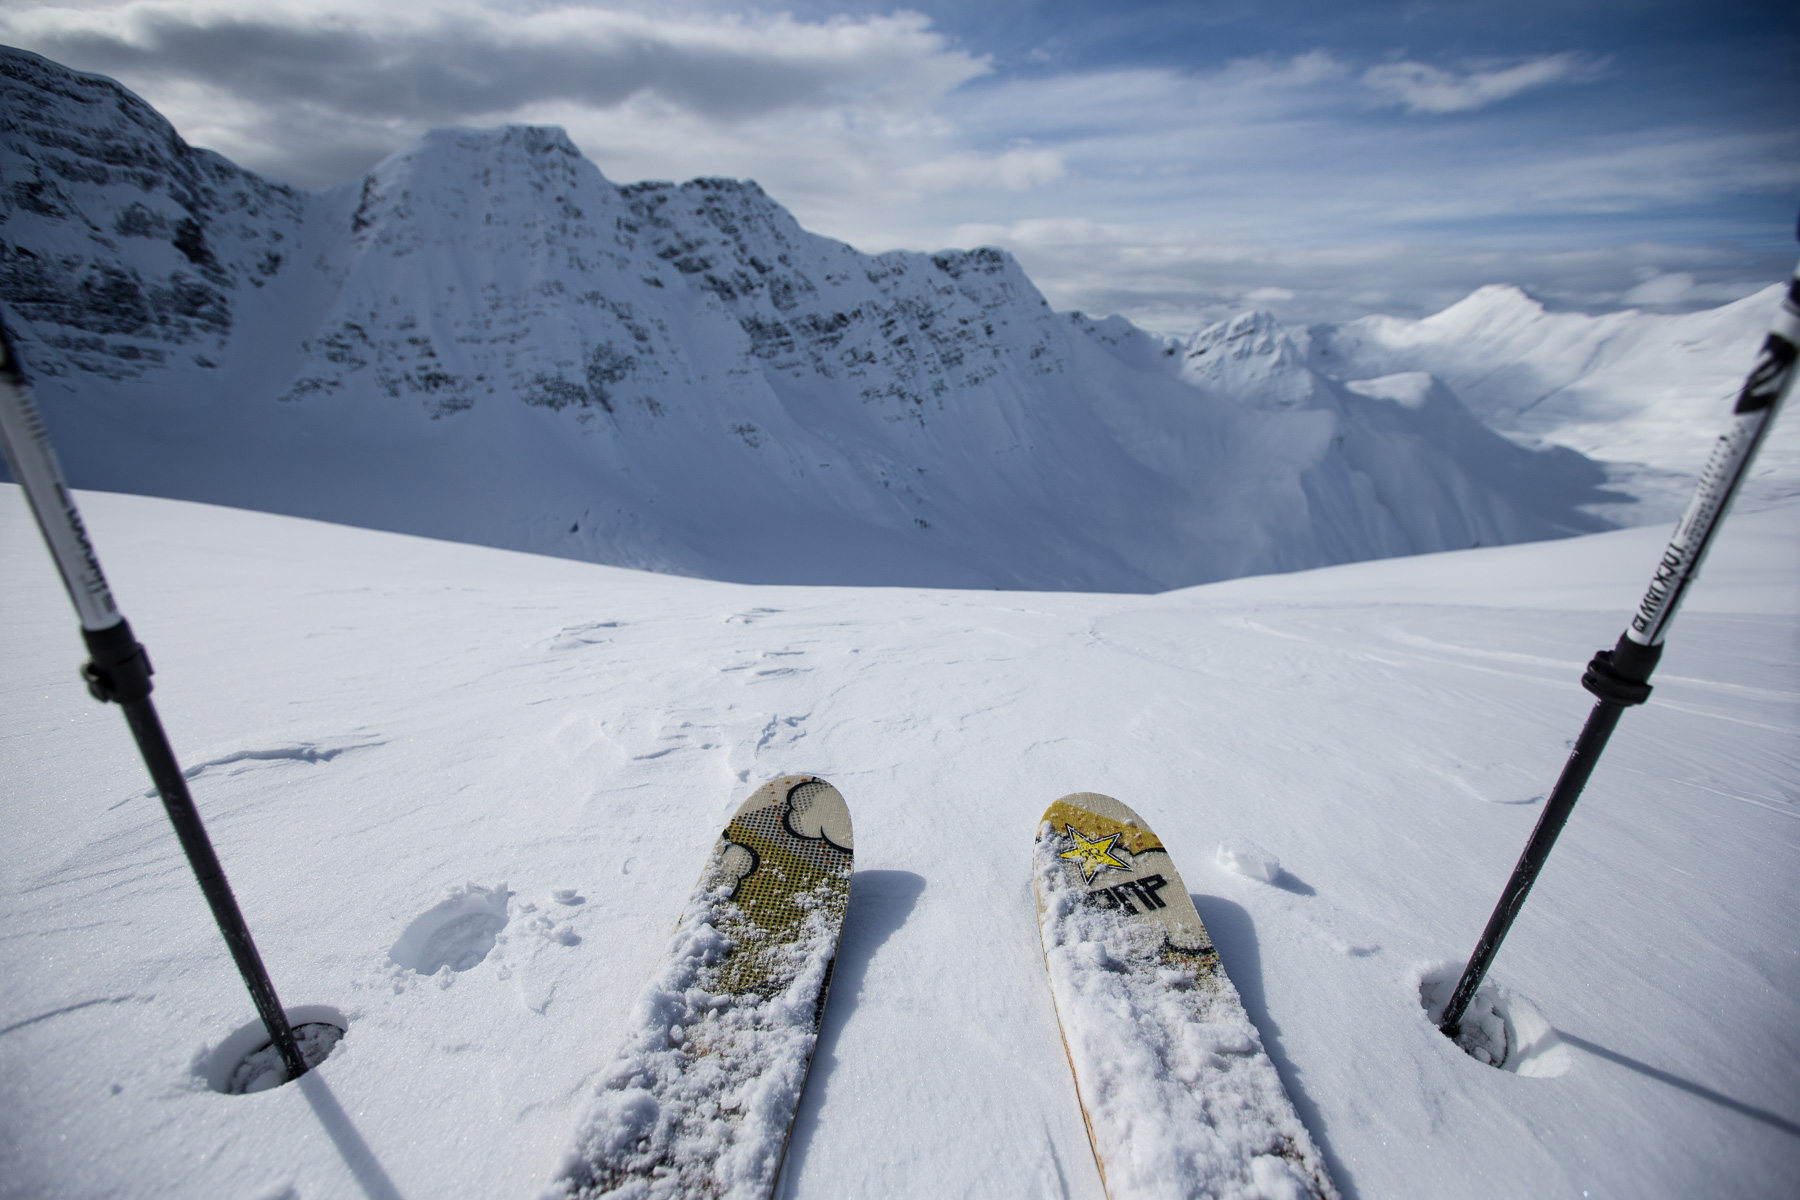 Ashley Barker Photography British Columbia Snow Point of View Skis Powder Skyline Mountain Clouds Poles